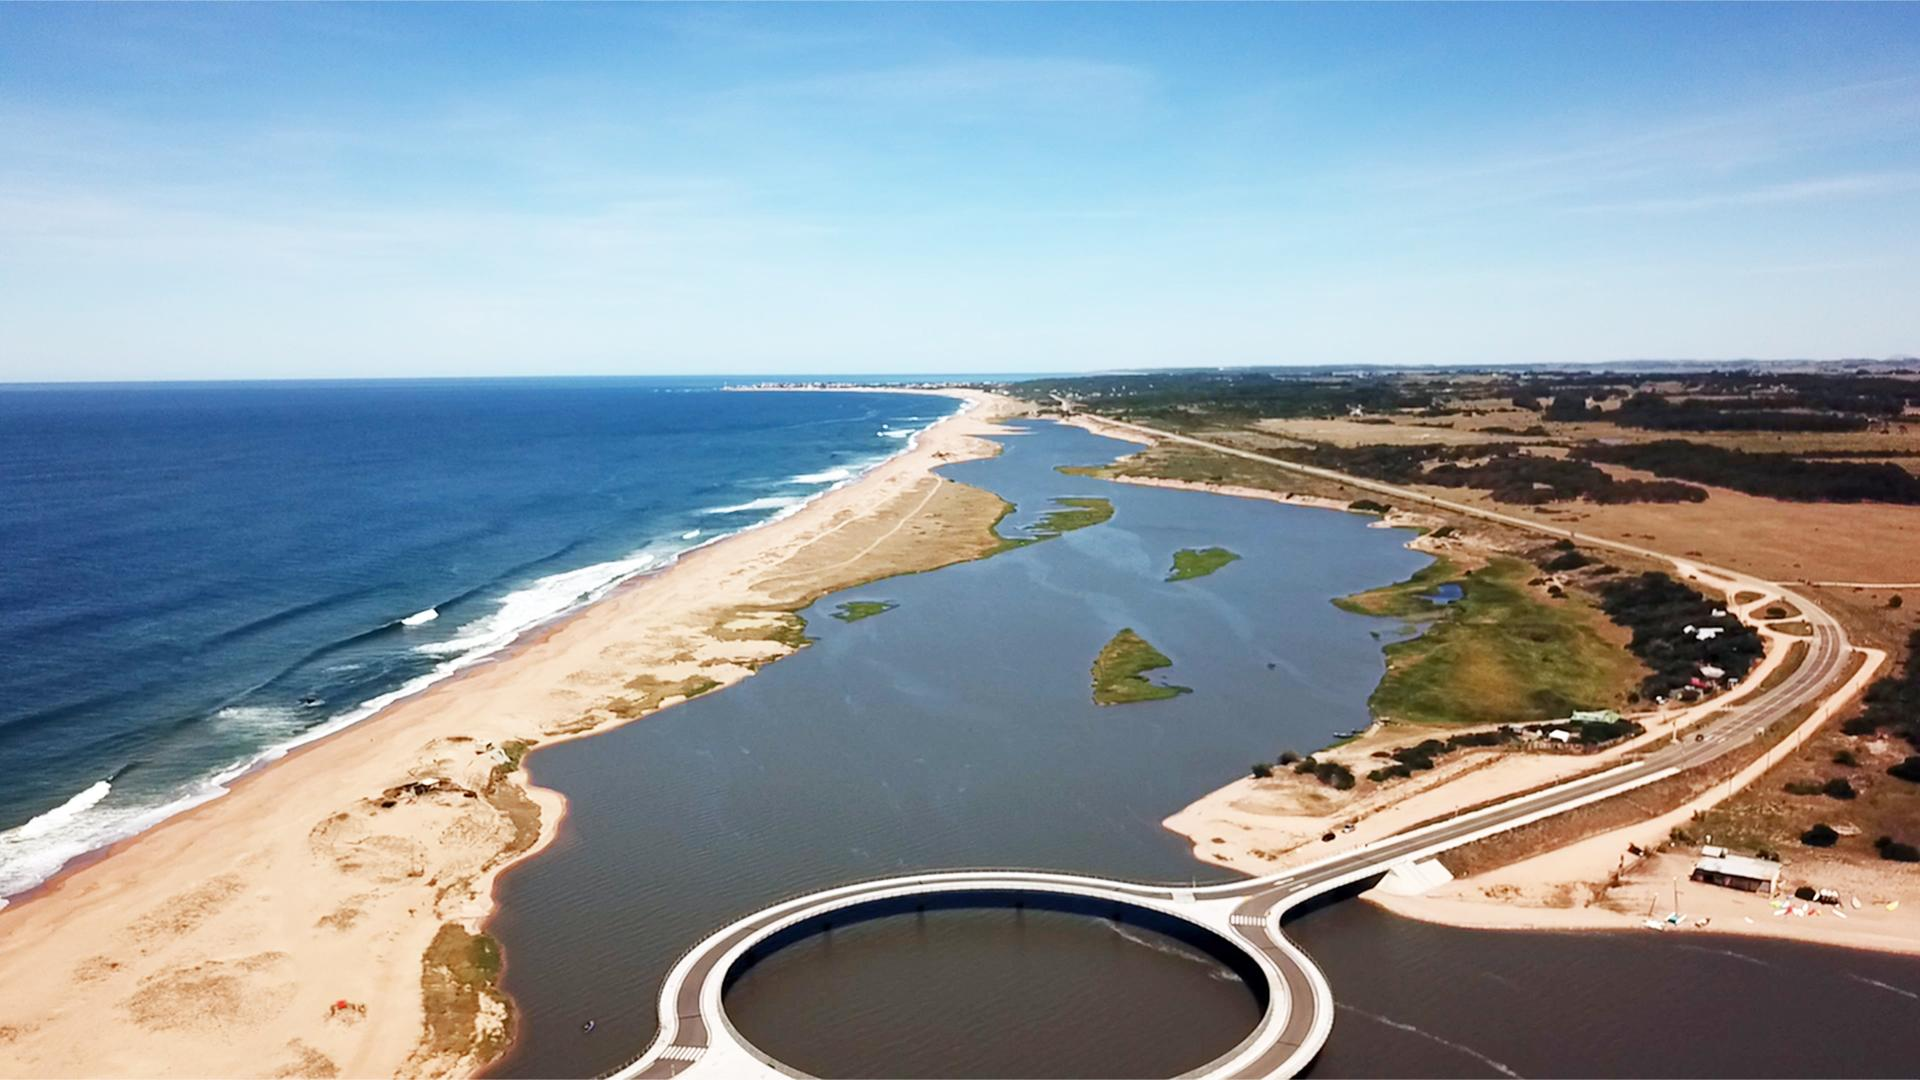 8.65 Hectare Waterfront Land located in Jose Ignacio, Punta del Este, Uruguay, listed by Curiocity Villas.